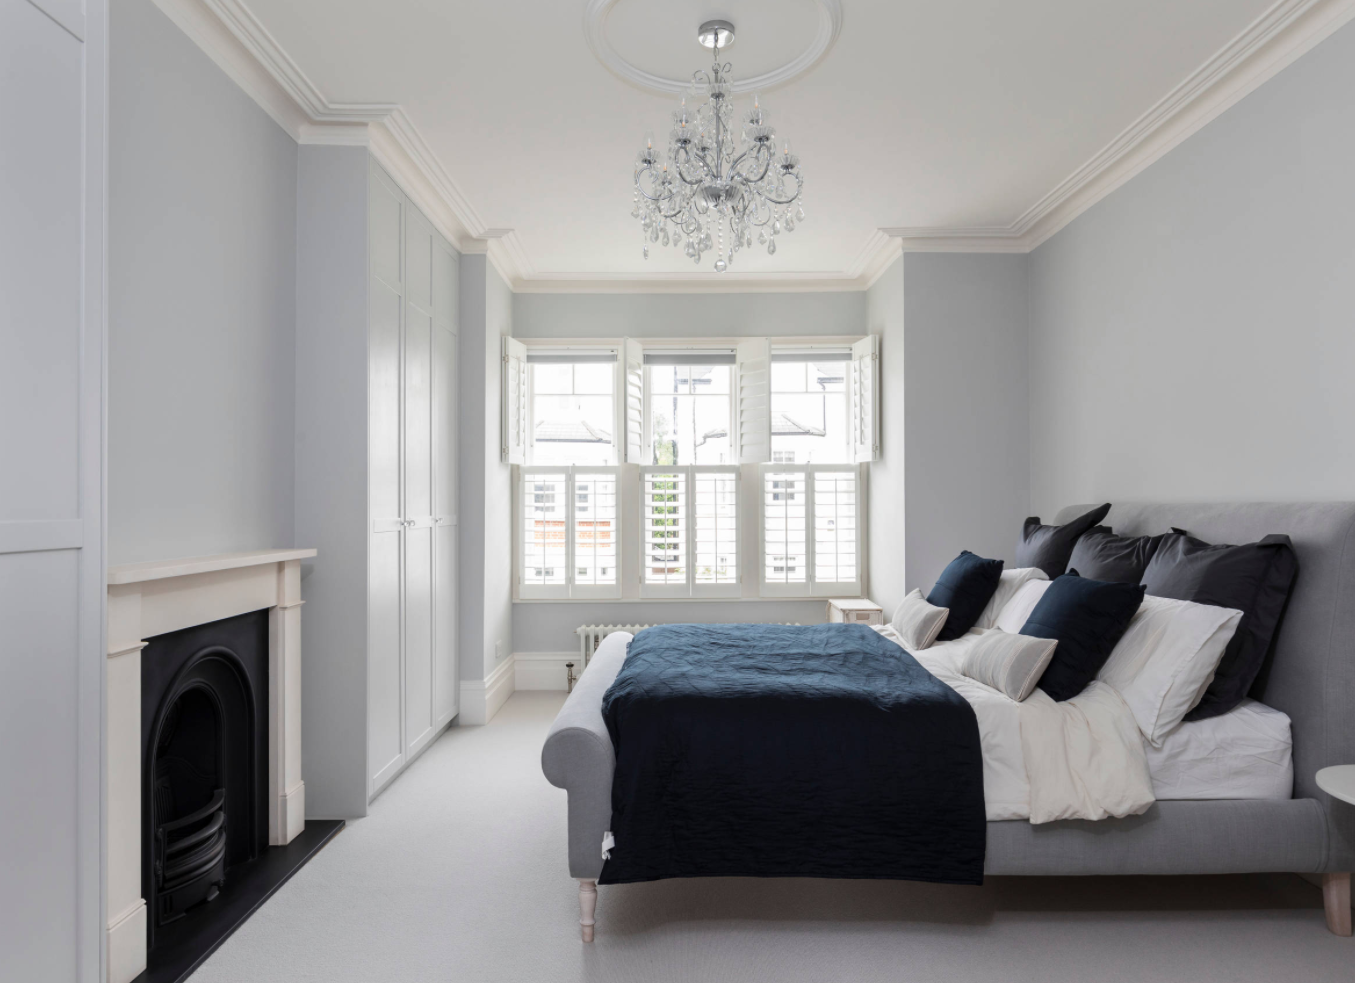 Bedroom inside Victorian townhouse in West London.